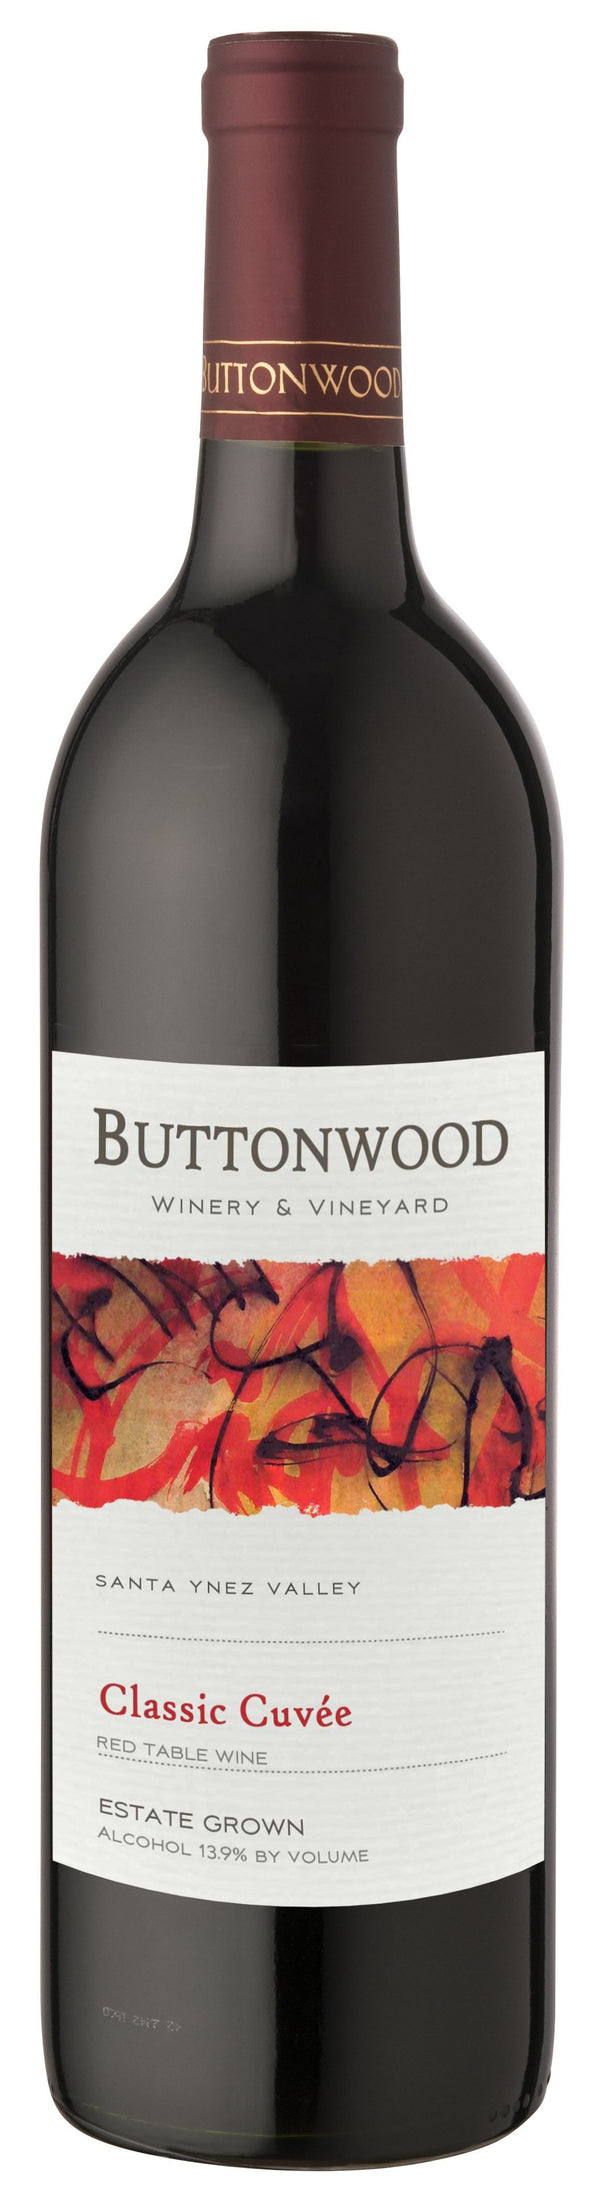 Buttonwood Santa Ynez Valley Classic Cuvee 2017 750ml